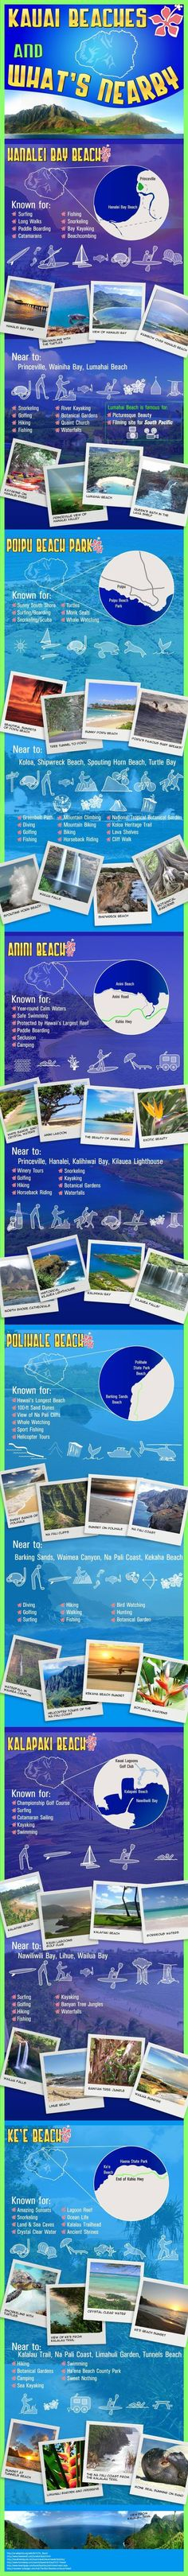 Spectacular Kauai Beaches - Pictures Worth a Thousand Words [Infographic]